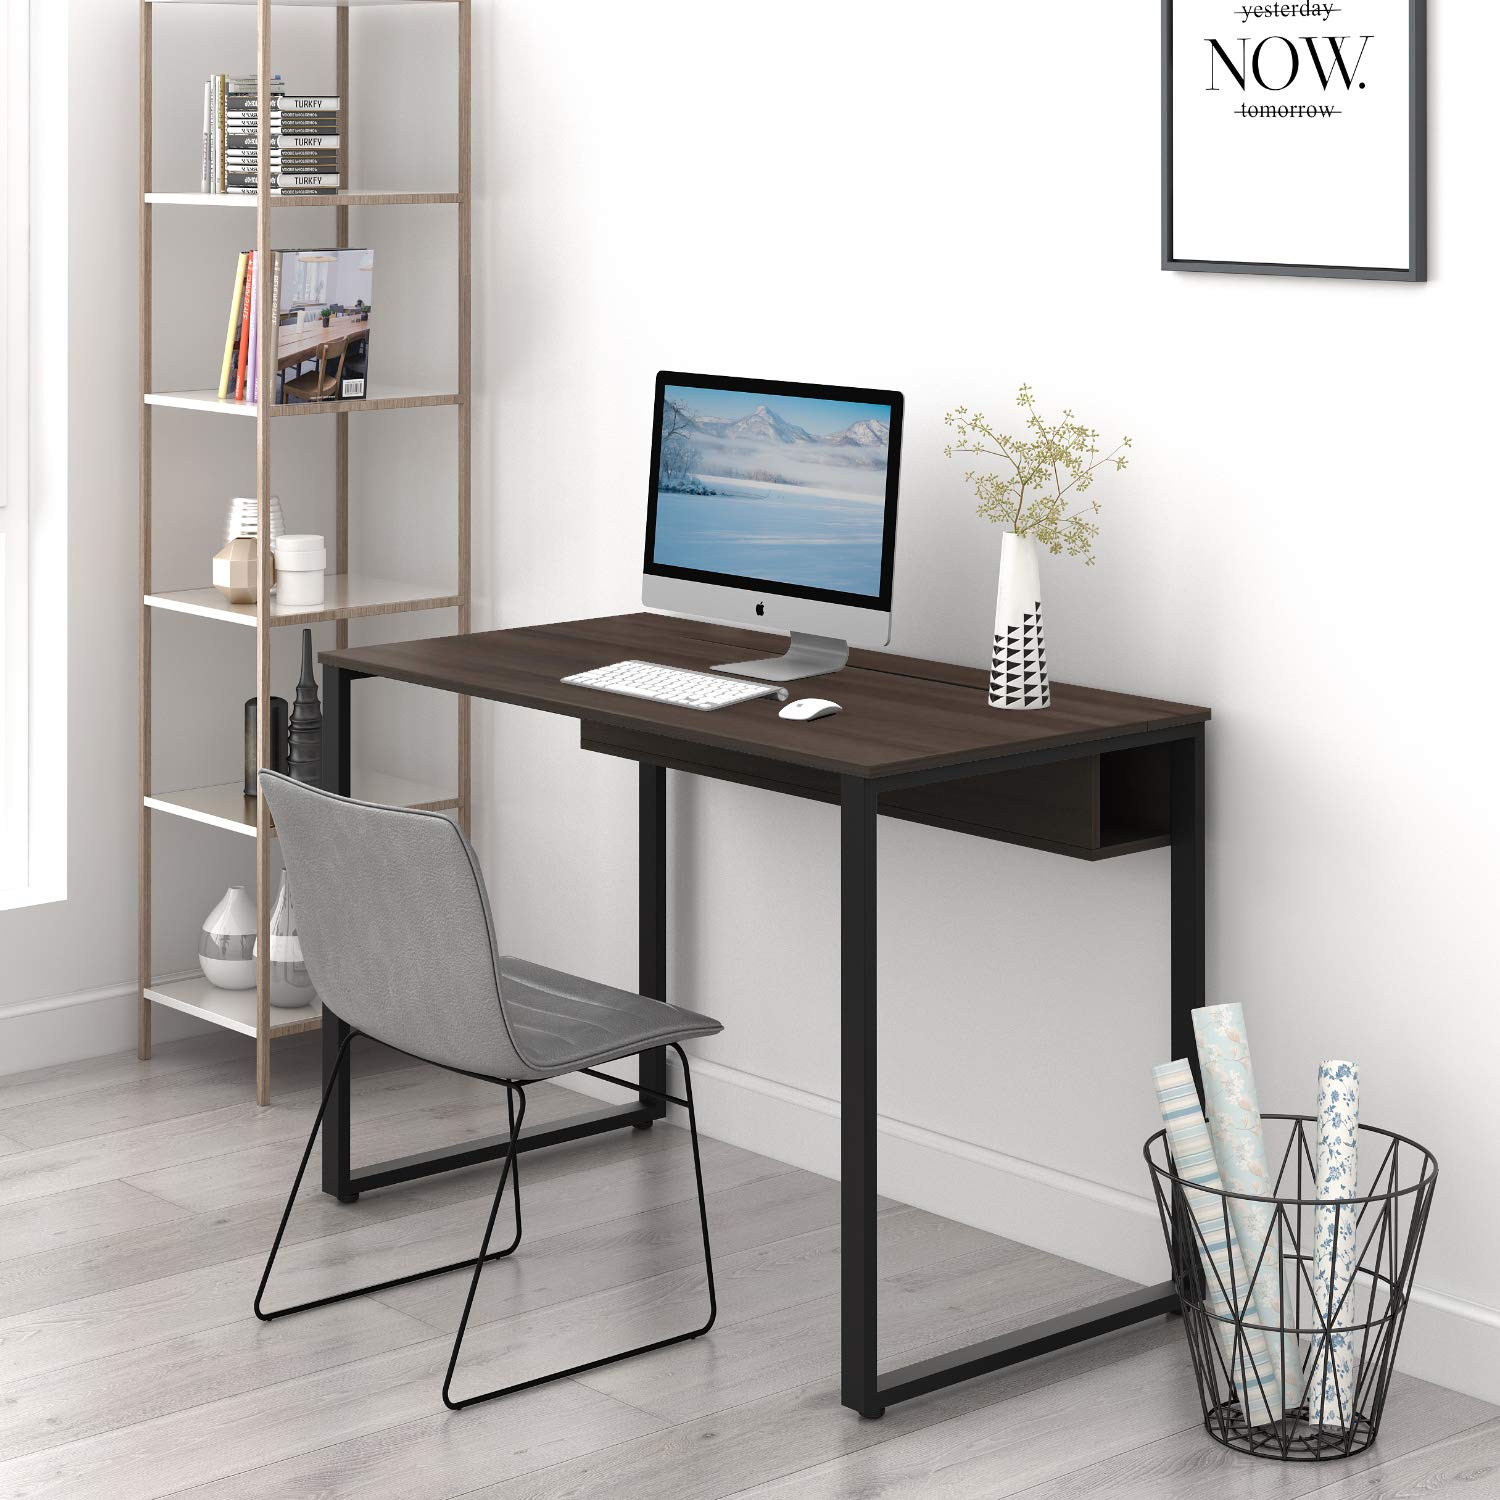 DEVAISE Computer Desk, Study Writing Table with Built-in Cable Management, Home Office Workstation by DEVAISE